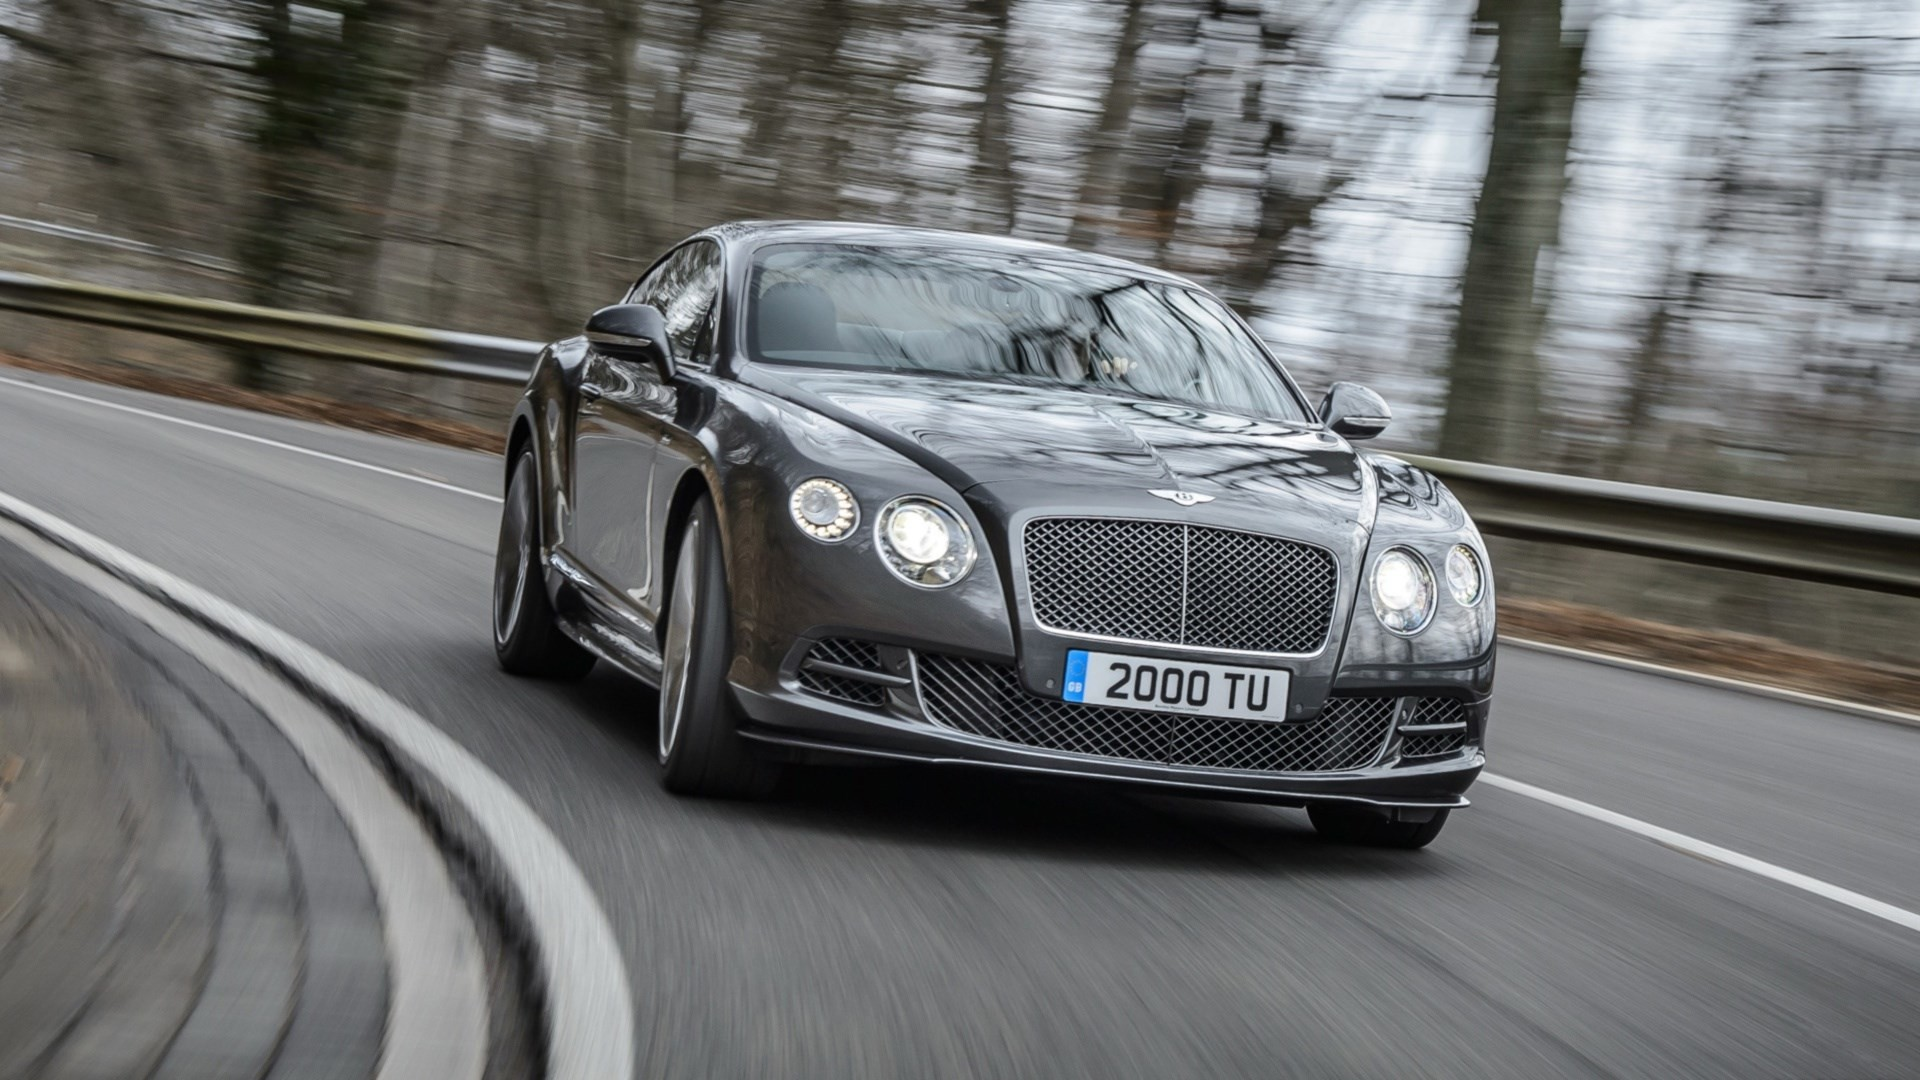 px bentley continental gt speed wallpaper 1080p high quality by  Bradford Grant